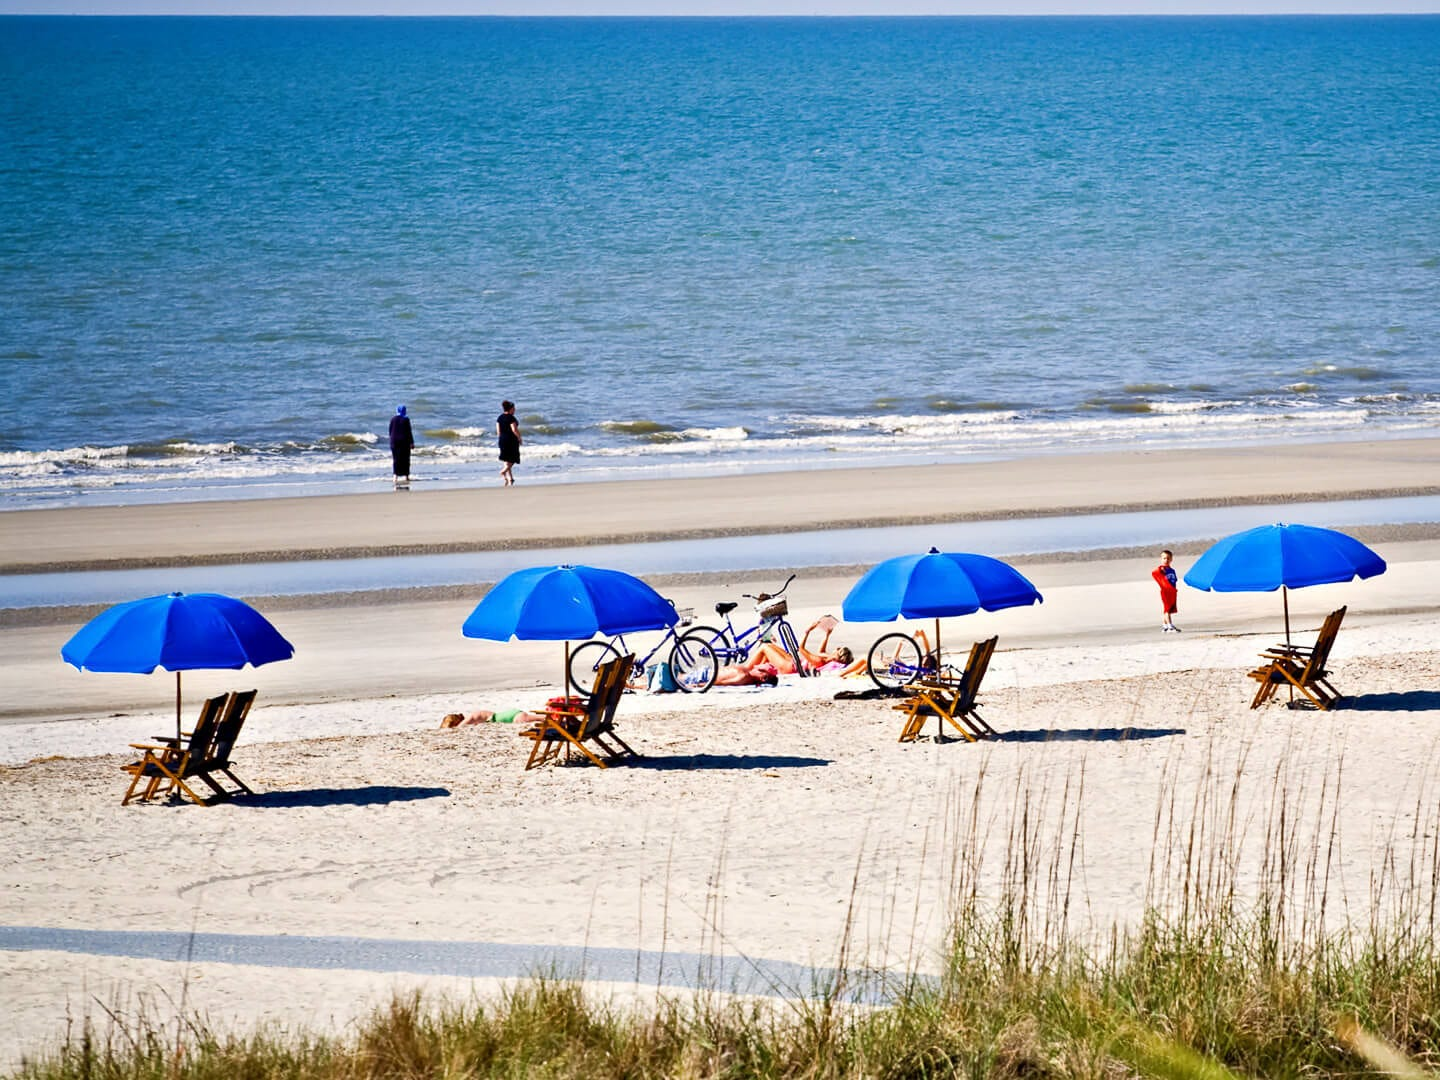 No. 4: Hilton Head, South Carolina. Thanksgiving trip cost: $1,633.50. Christmas trip cost: $1,531.50. Flying round-trip to Hilton Head for Thanksgiving will set you back an average of $683.50 — the third-highest cost compared to the other places included in this study. And, it's the second-most expensive place to fly to during Christmas, when round-trip flights cost an average of $635.50.